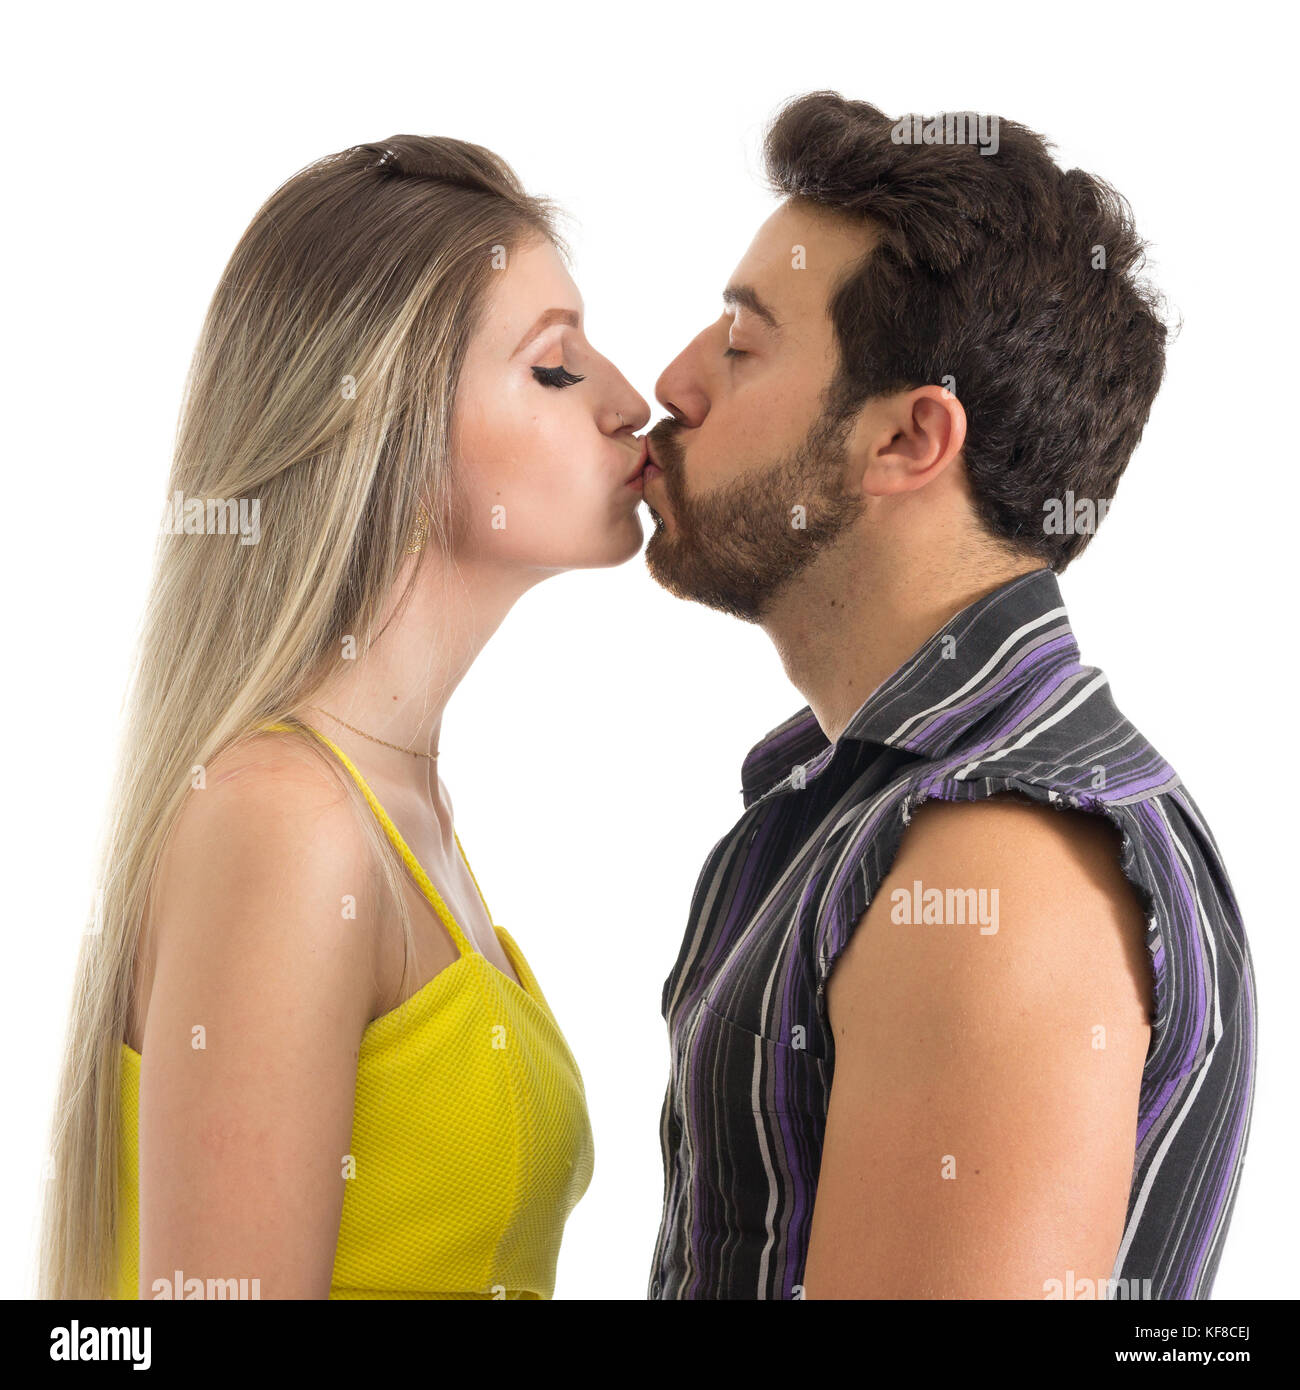 2e404893 Girlfriend and boyfriend kissing each other. A couple in love is kissing  gently. Profile face, white background. Romance.